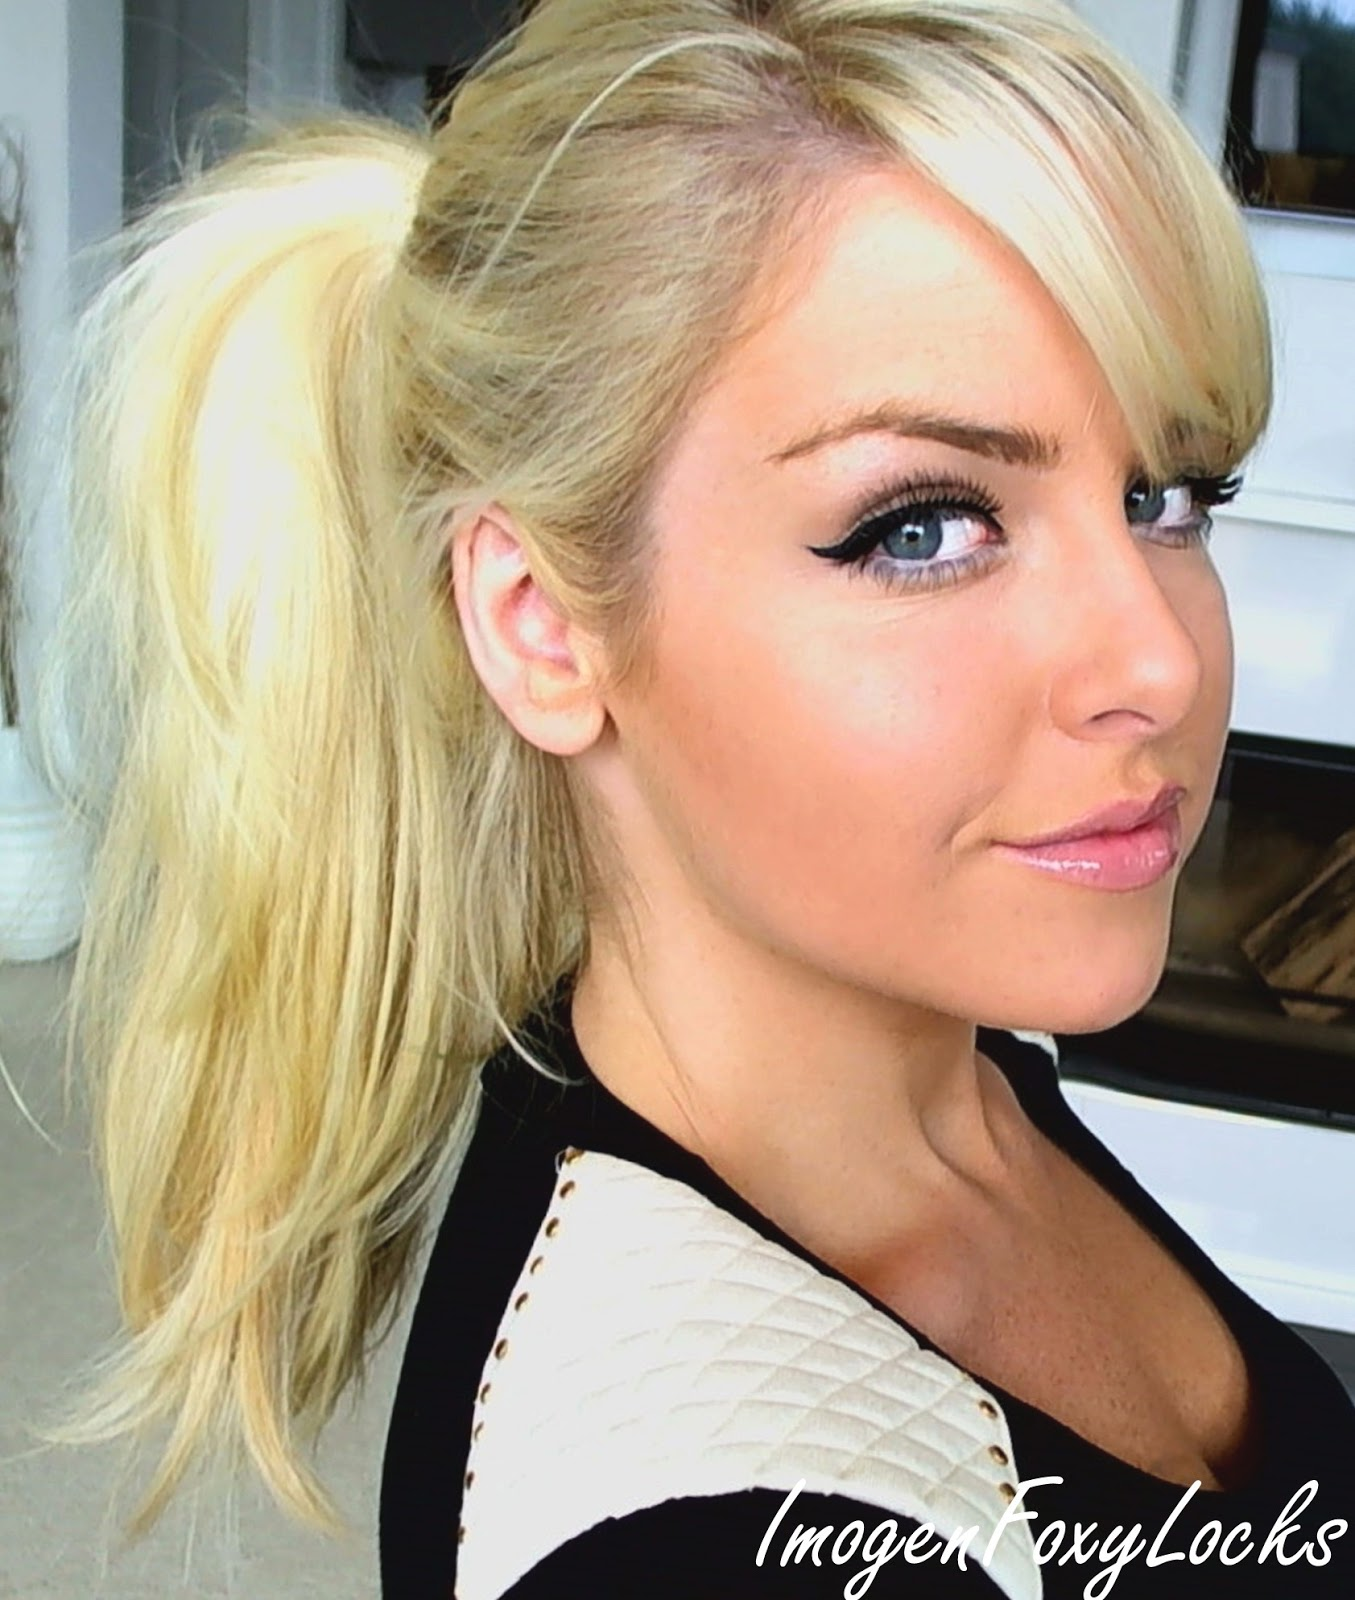 Imogen Foxy Locks: How To Put Your Hair Up (Ponytail ...